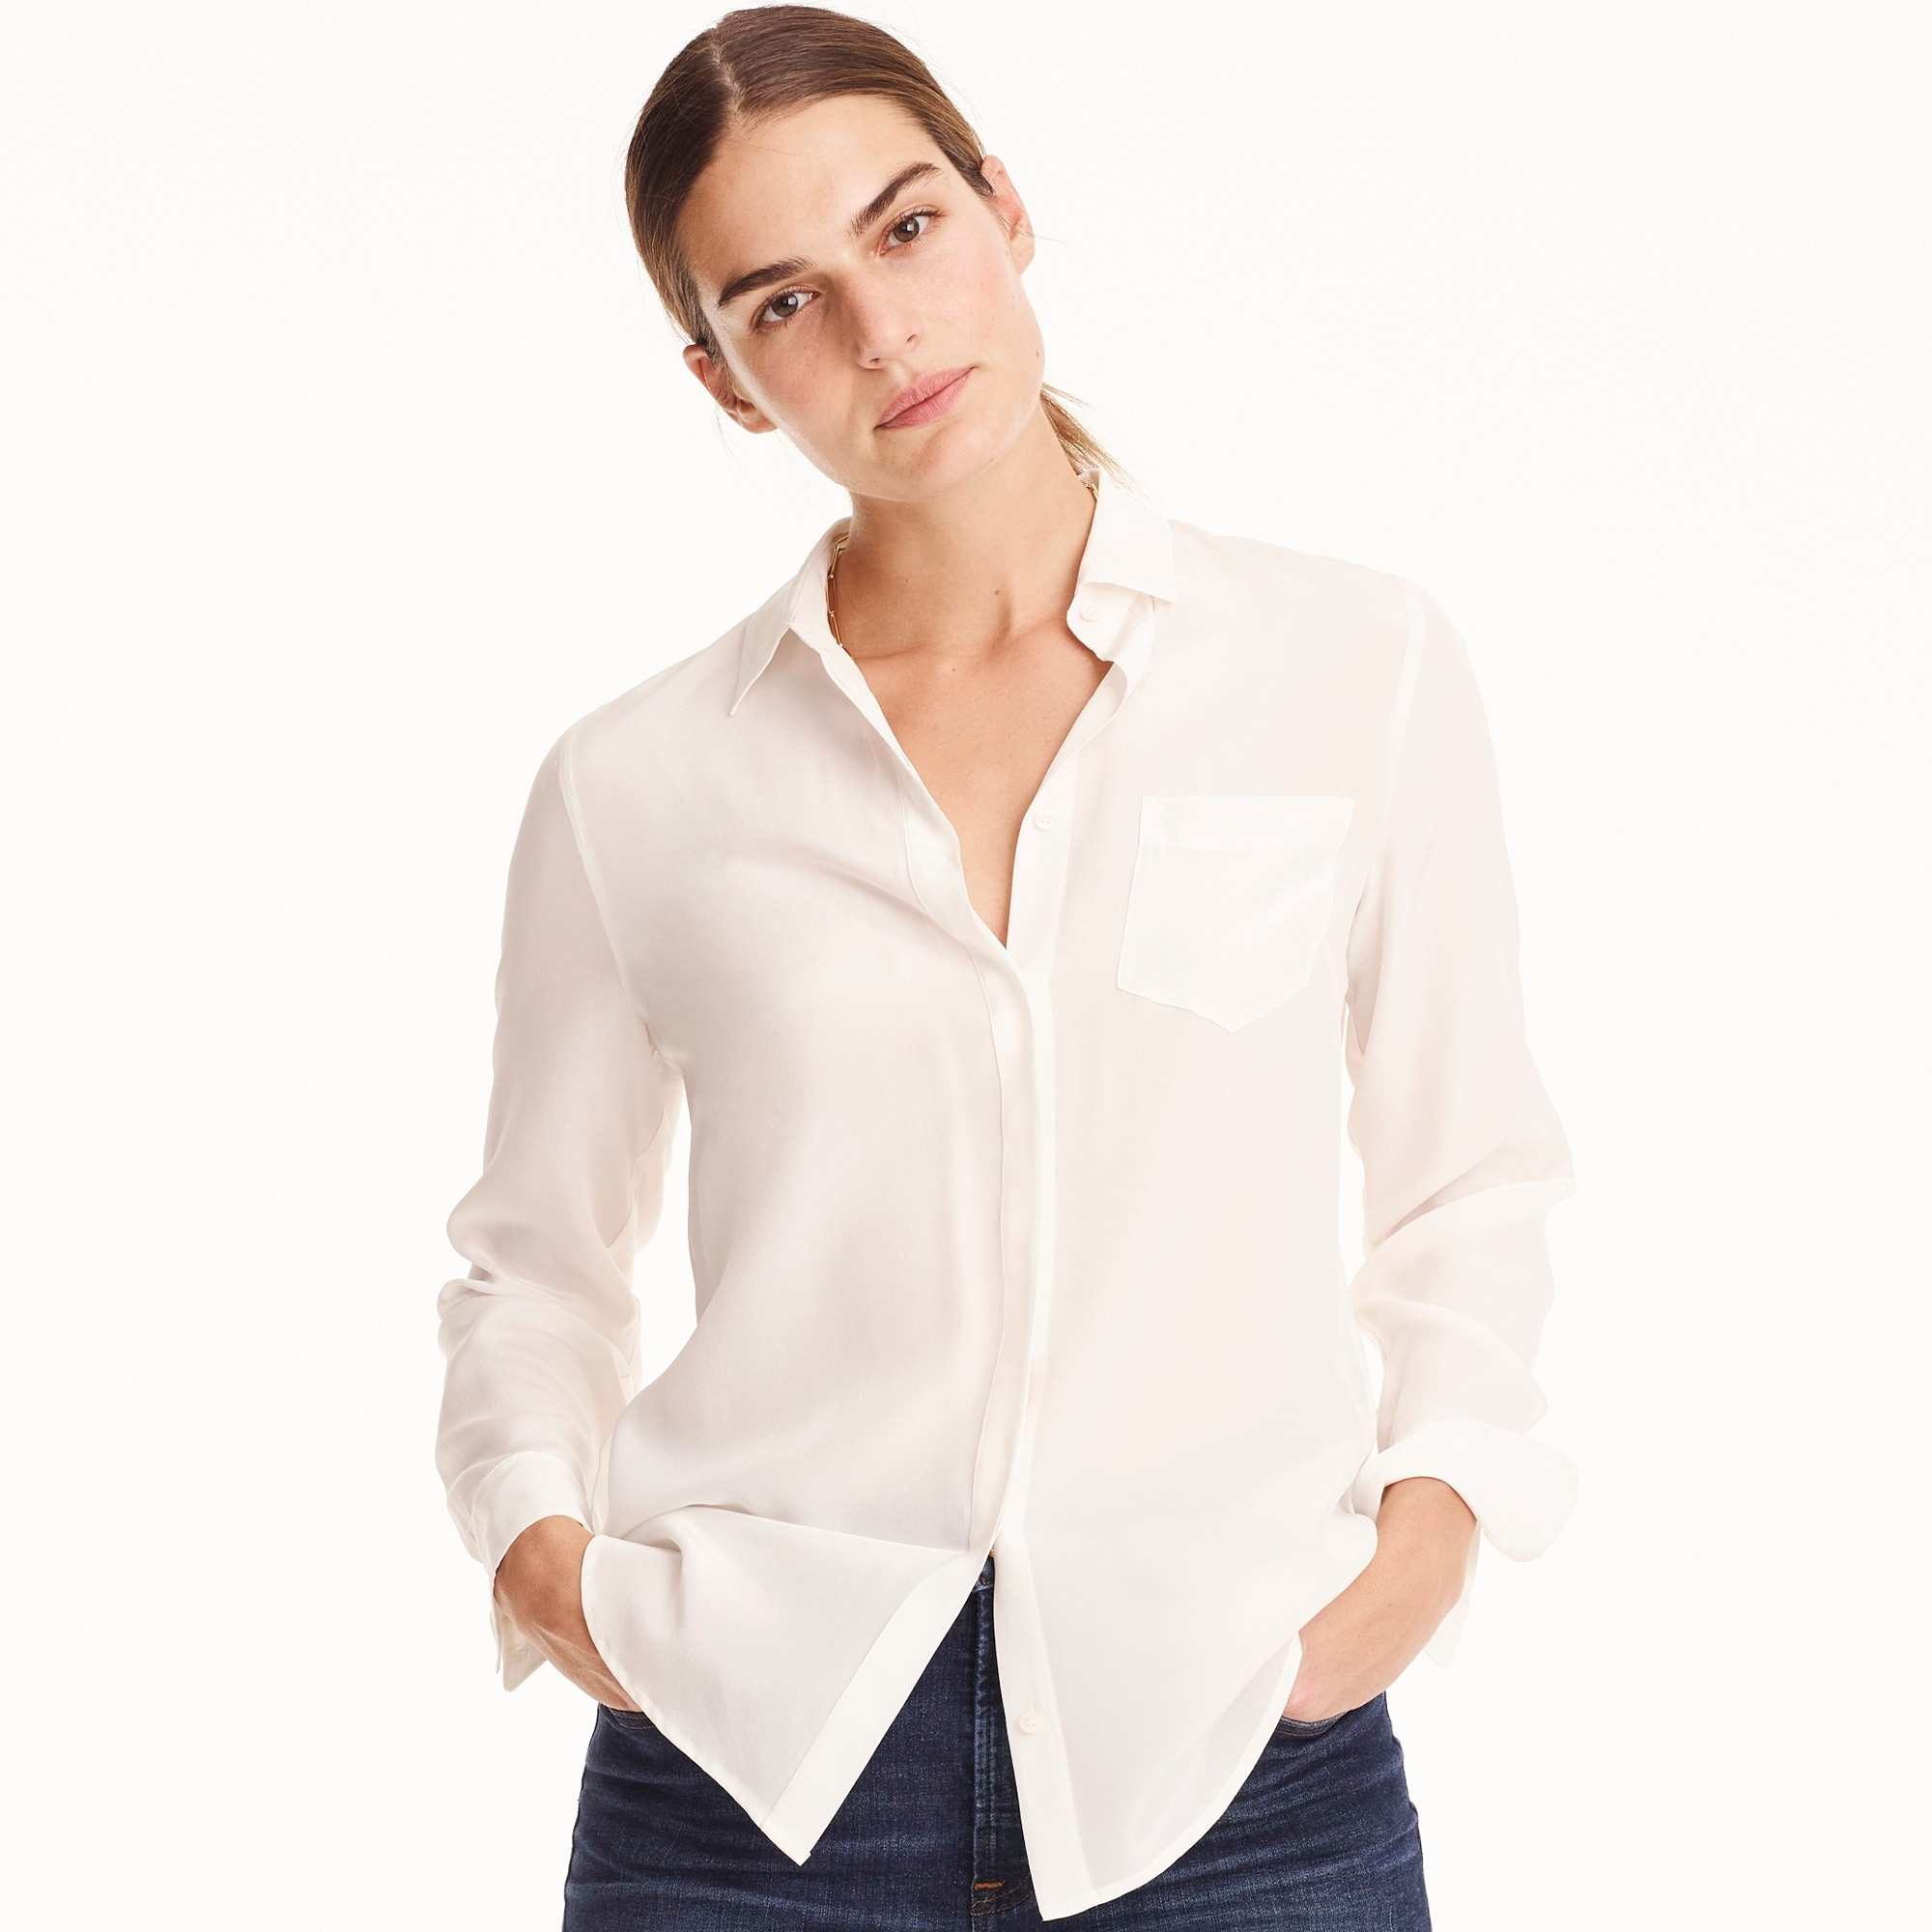 Silk button-up shirt women shirts & tops c